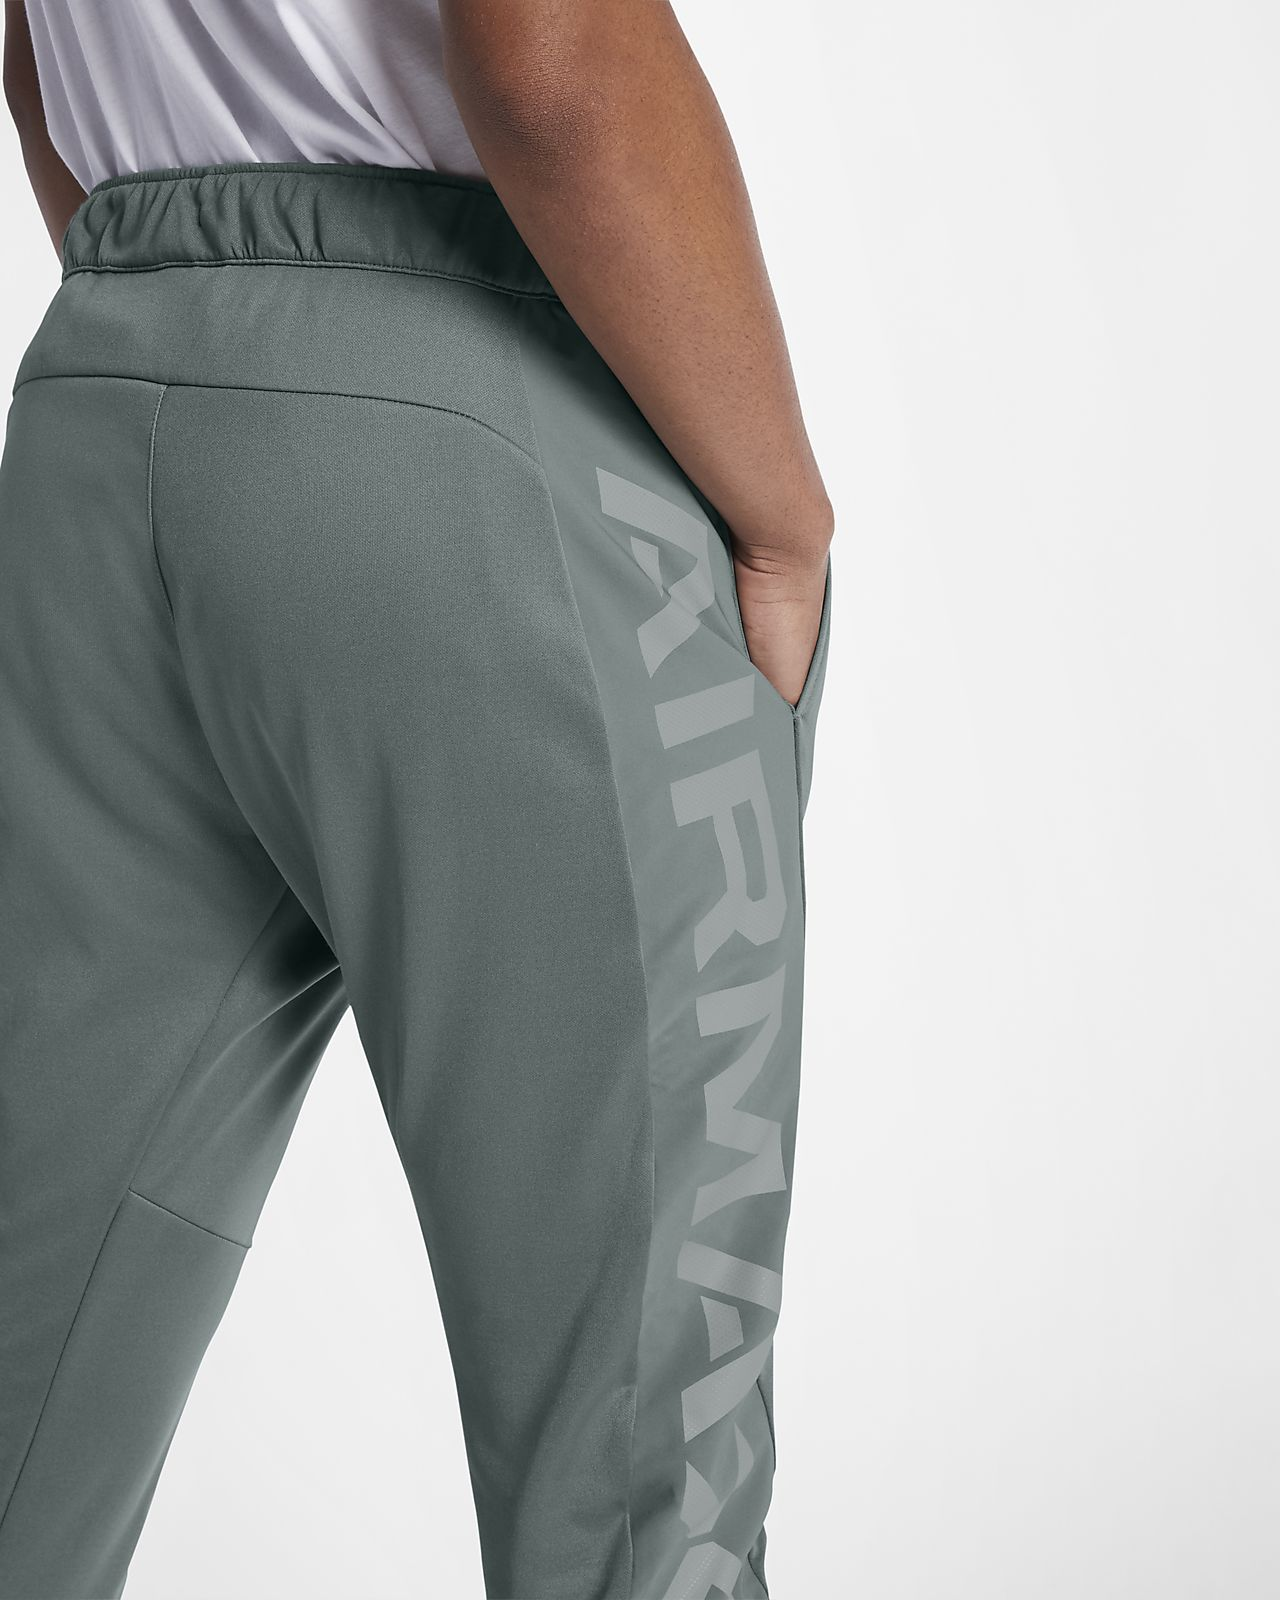 check out 55f4e 30e83 ... Nike Sportswear Air Max Mens Pants